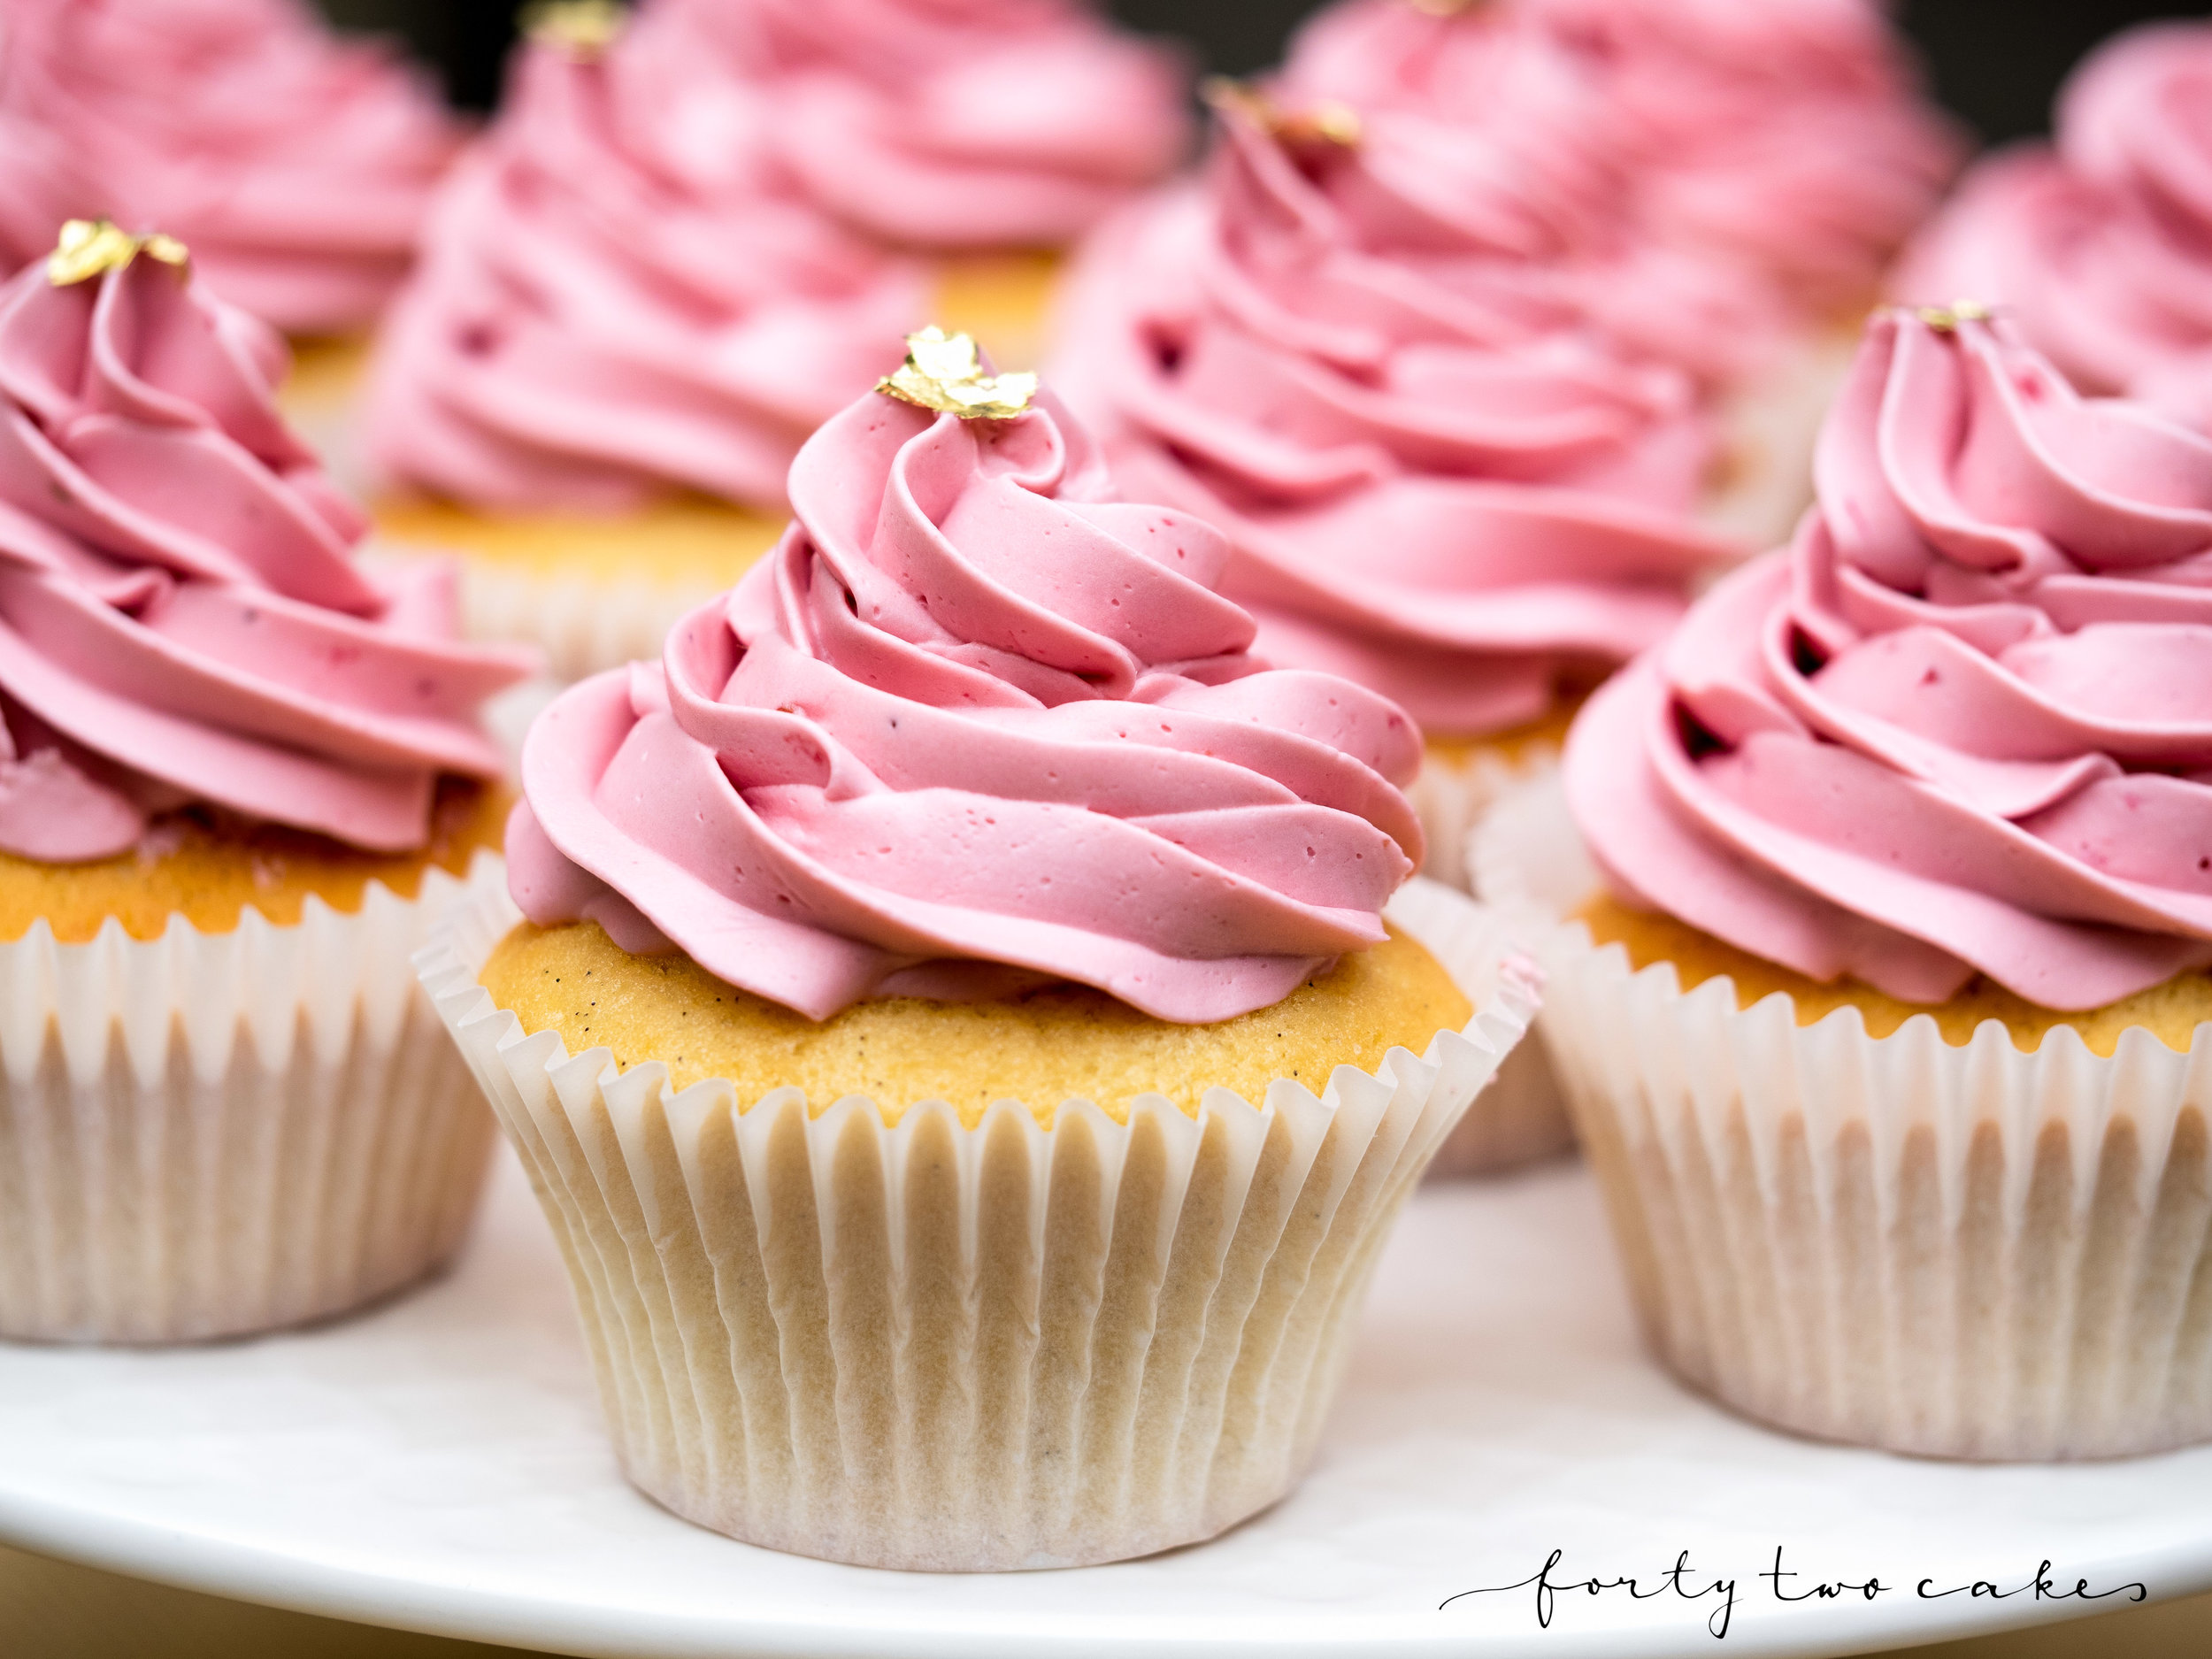 Forty-Two Cakes - Small Things-11-2.jpg